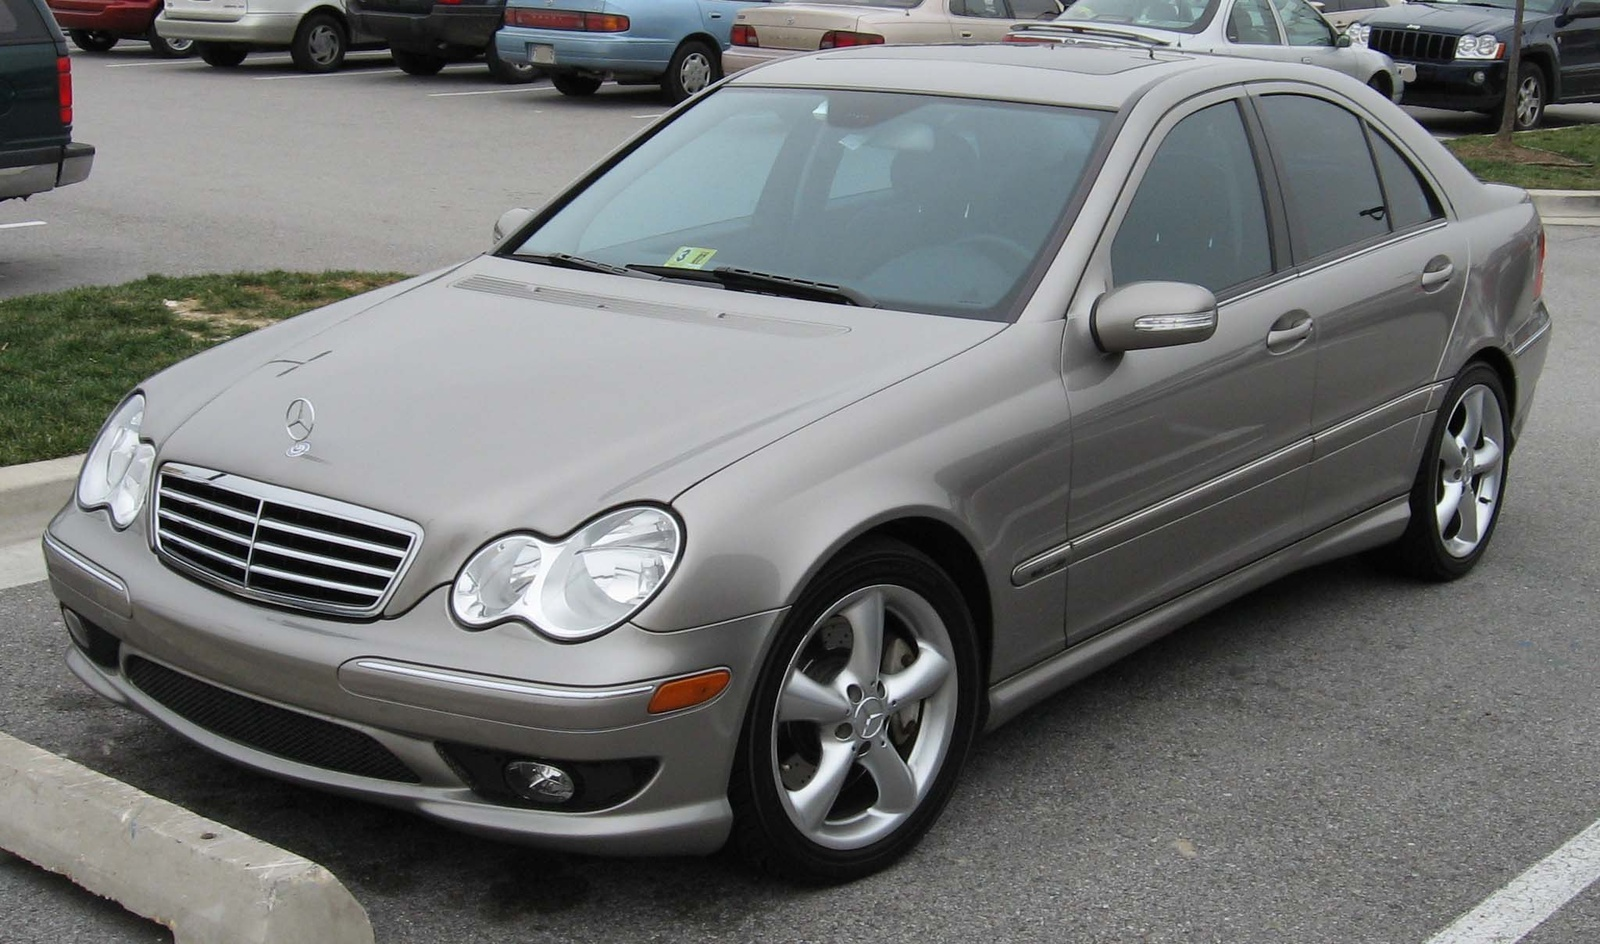 Mercedes Benz C240 2002 Review Amazing Pictures And